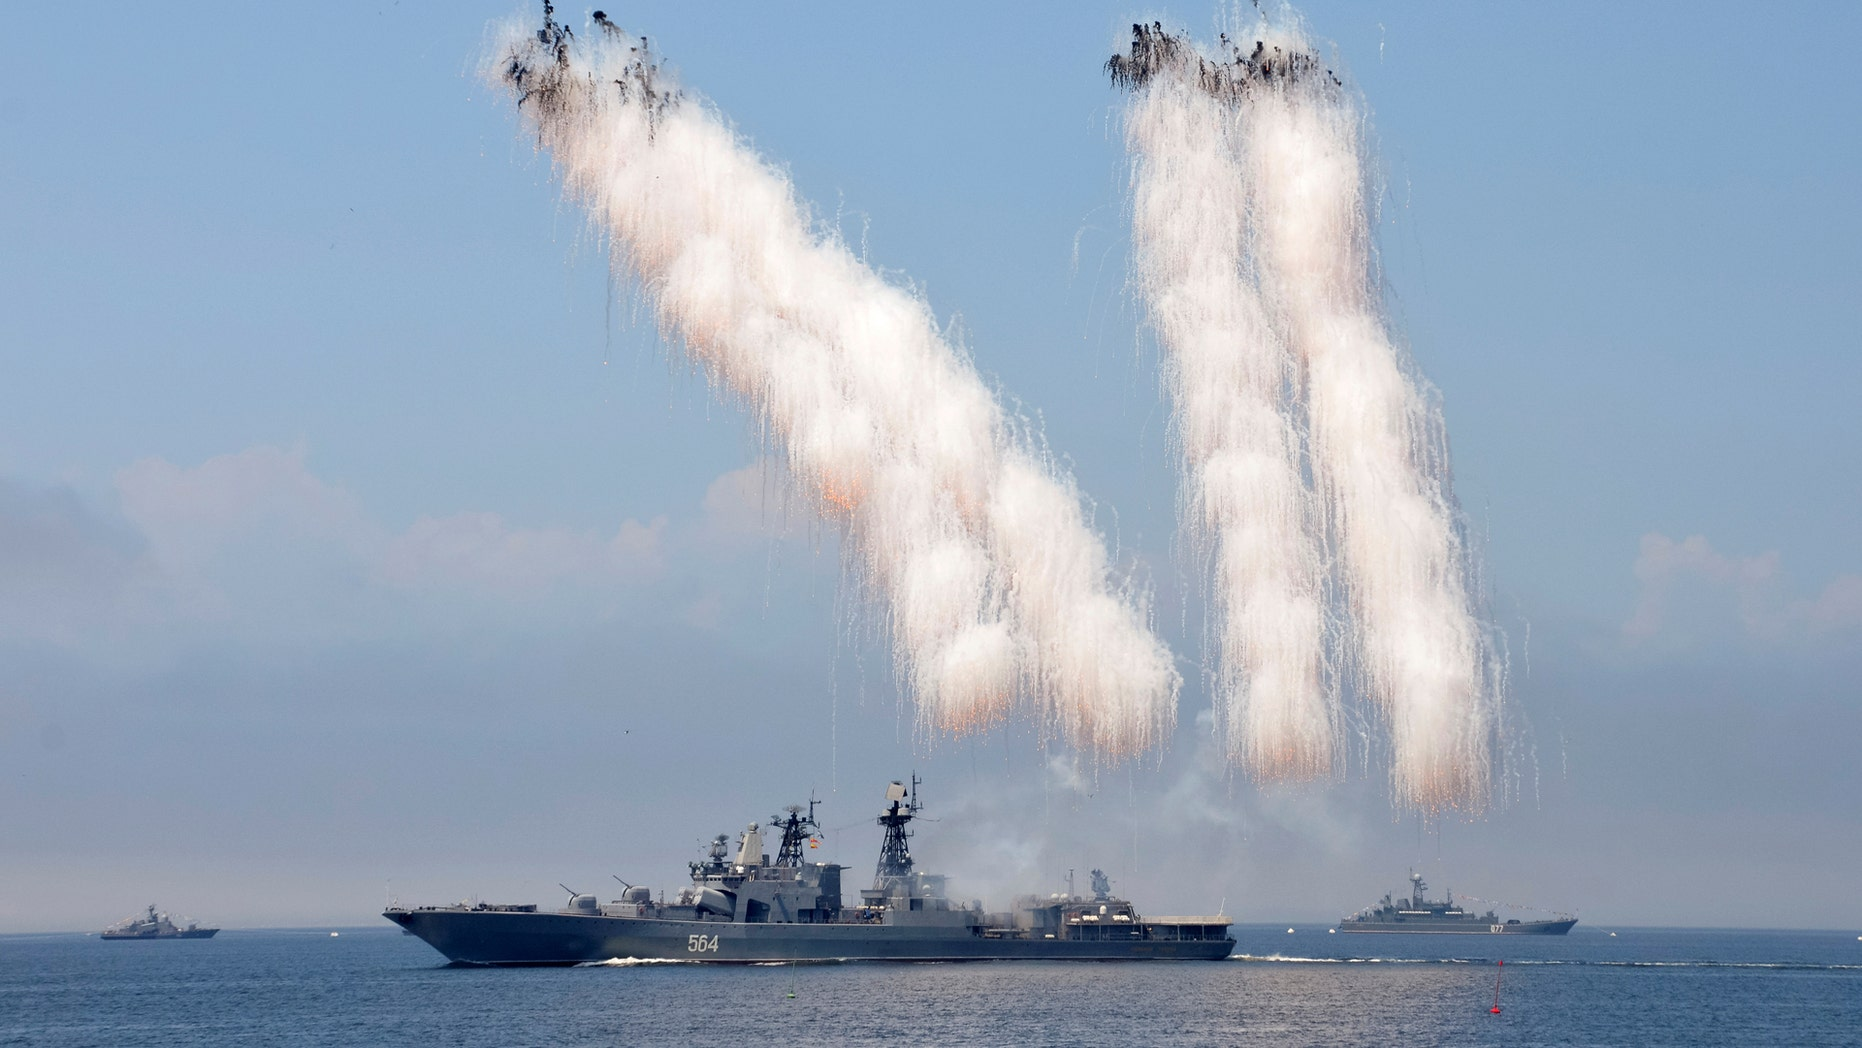 File photo - Russian warships sail past exploding anti-missile ordnance during a rehearsal for the Navy Day parade in the far eastern port of Vladivostok, Russia, July 30, 2016. (REUTERS/Yuri Maltsev)